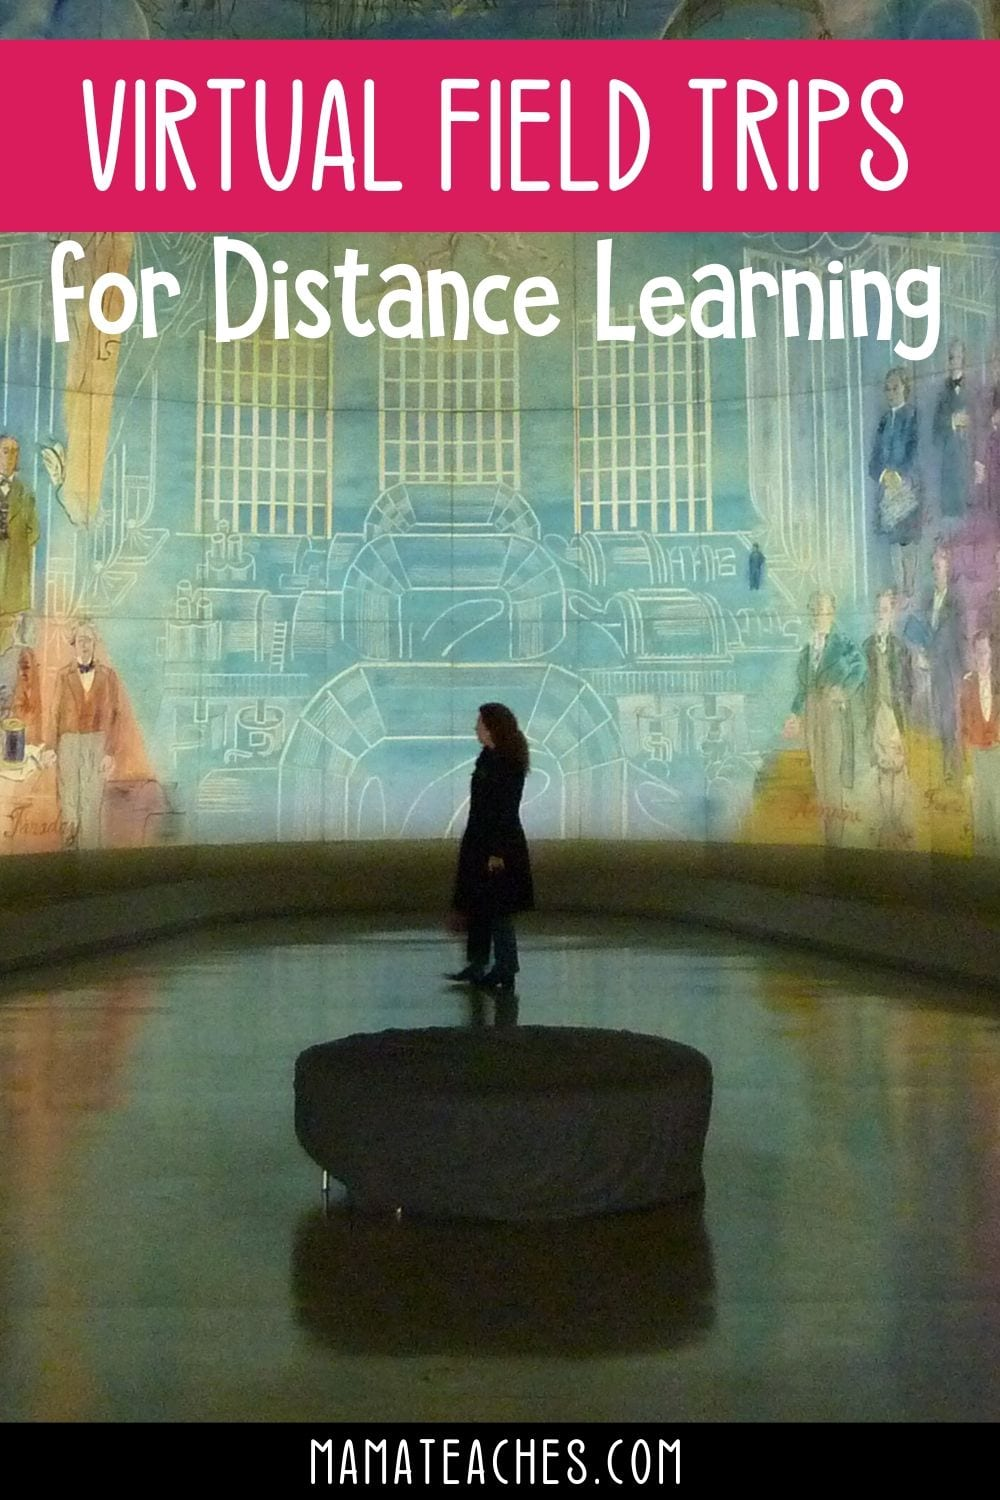 Virtual Field Trips for Distance Learning - MamaTeaches.com